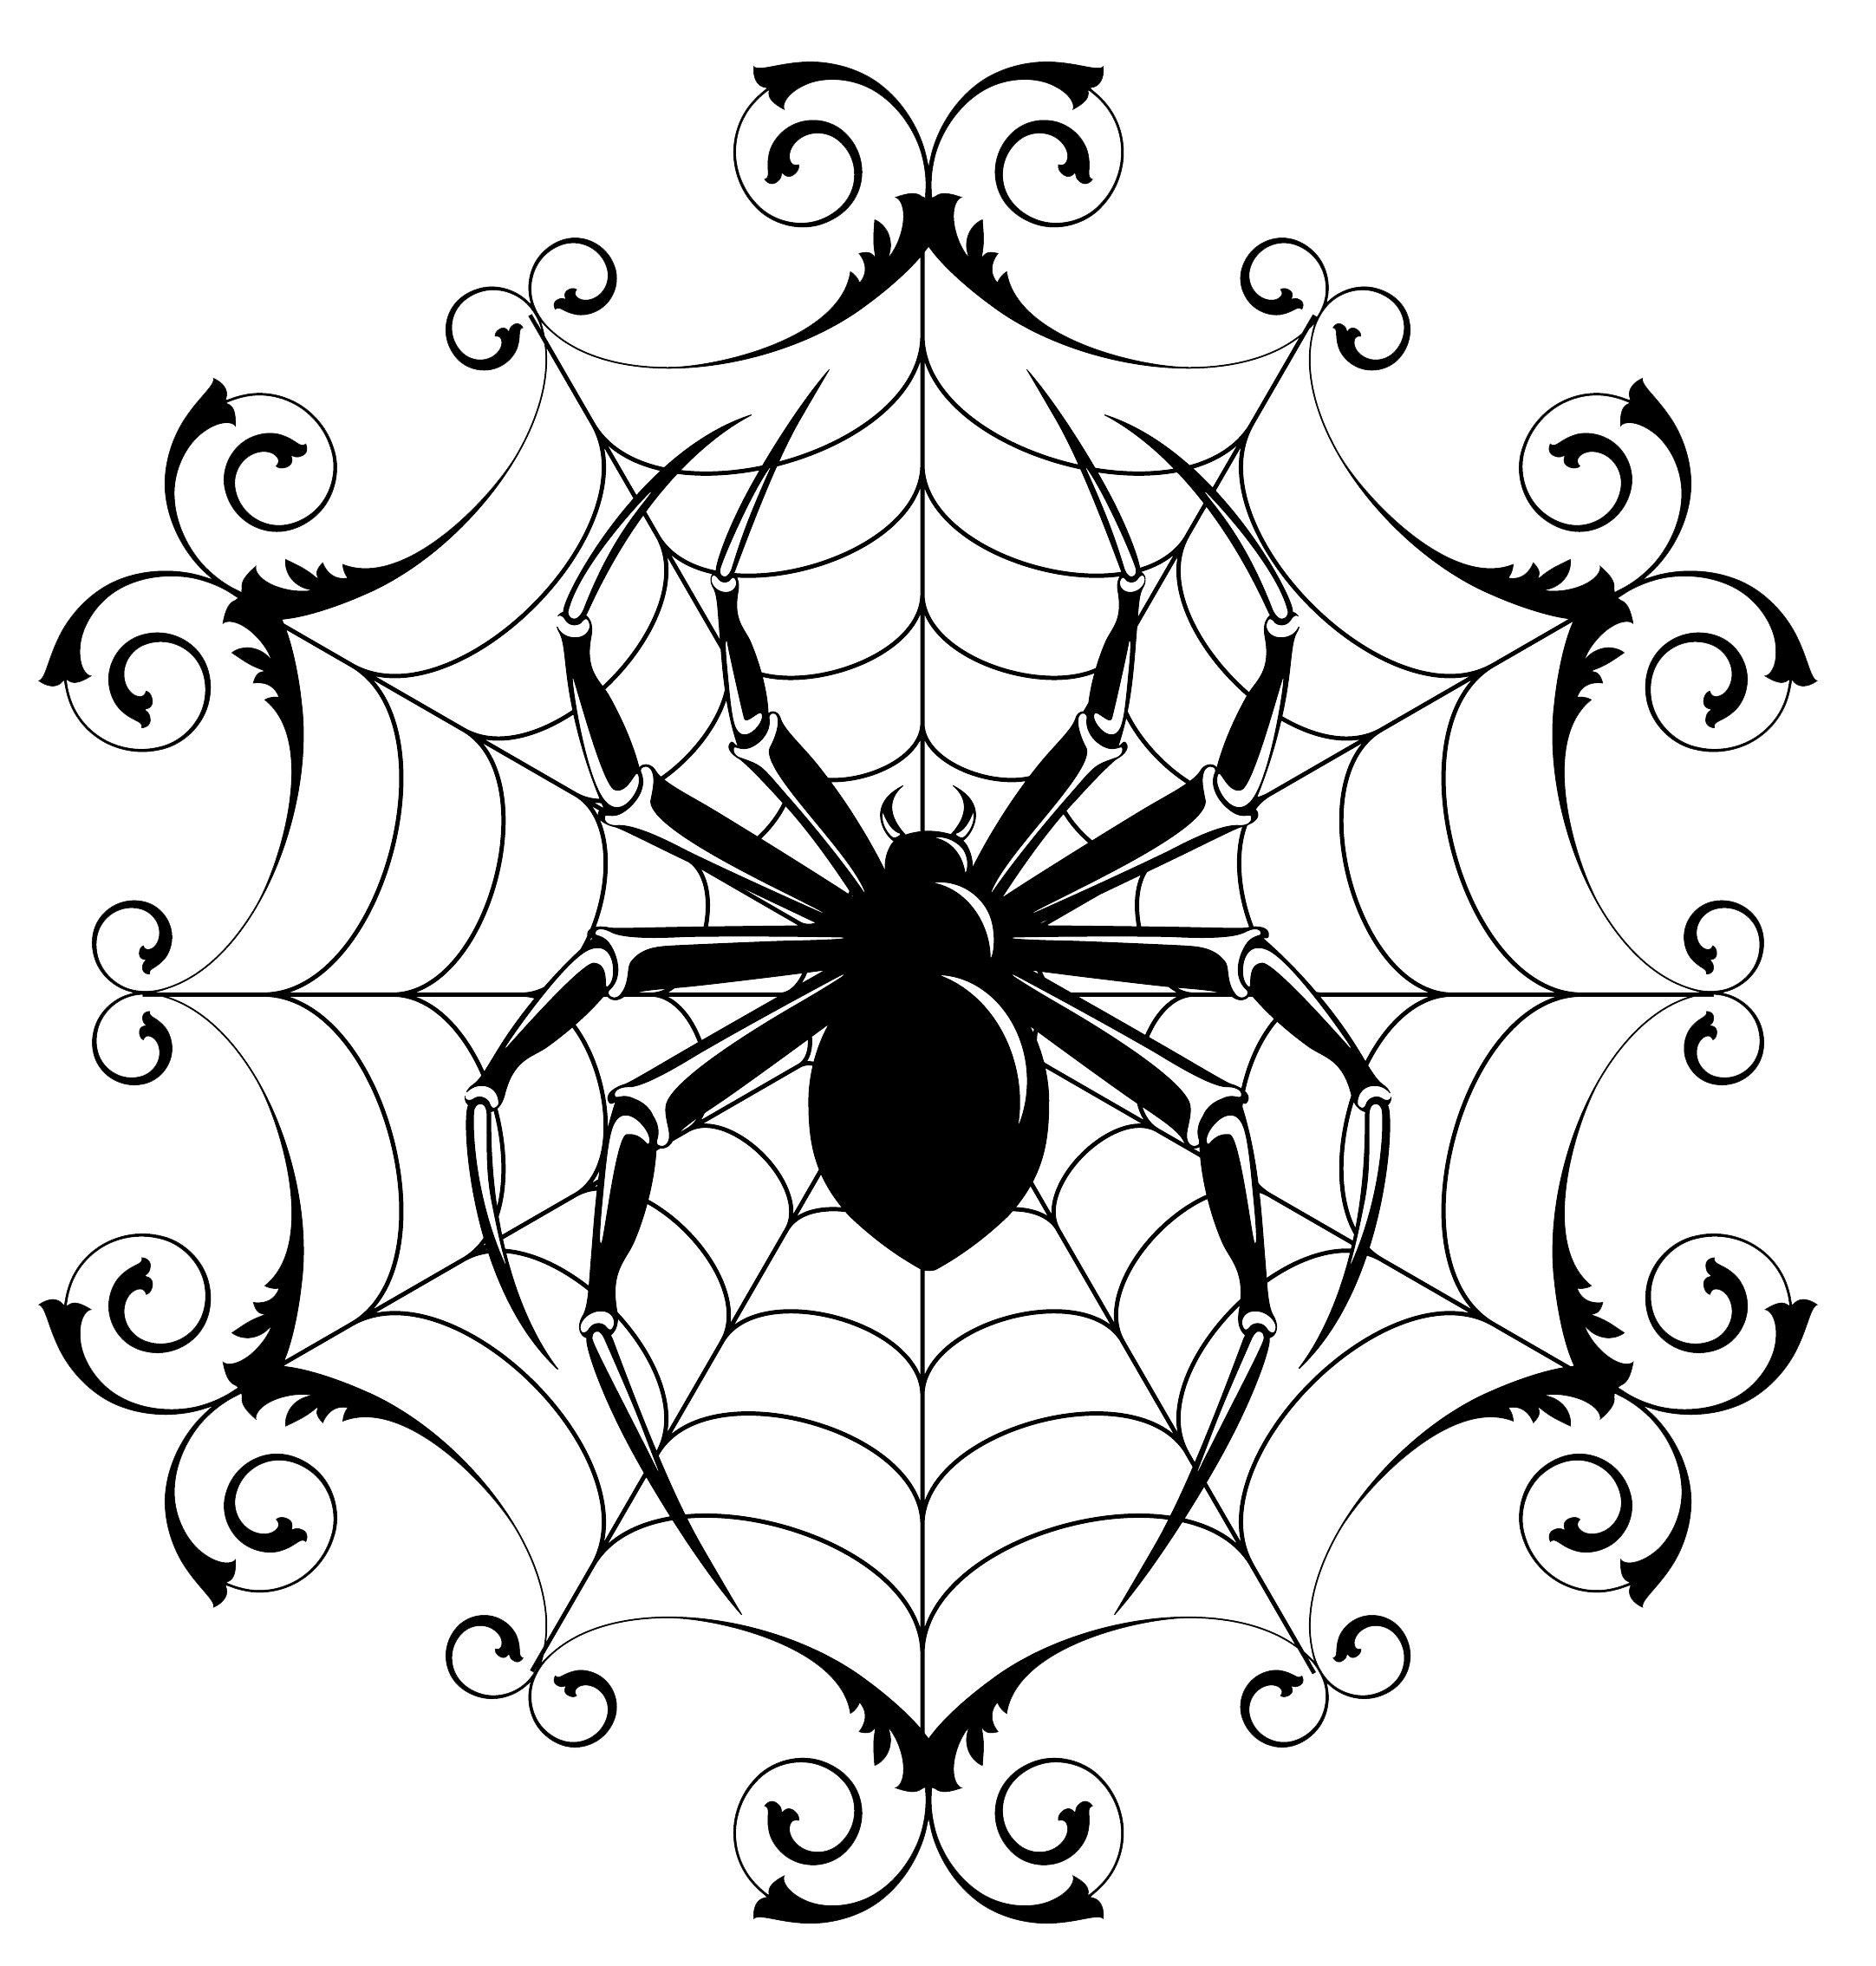 2164x2268 drawings of halloween pictures fun for christmas - Drawings Of Halloween Pictures